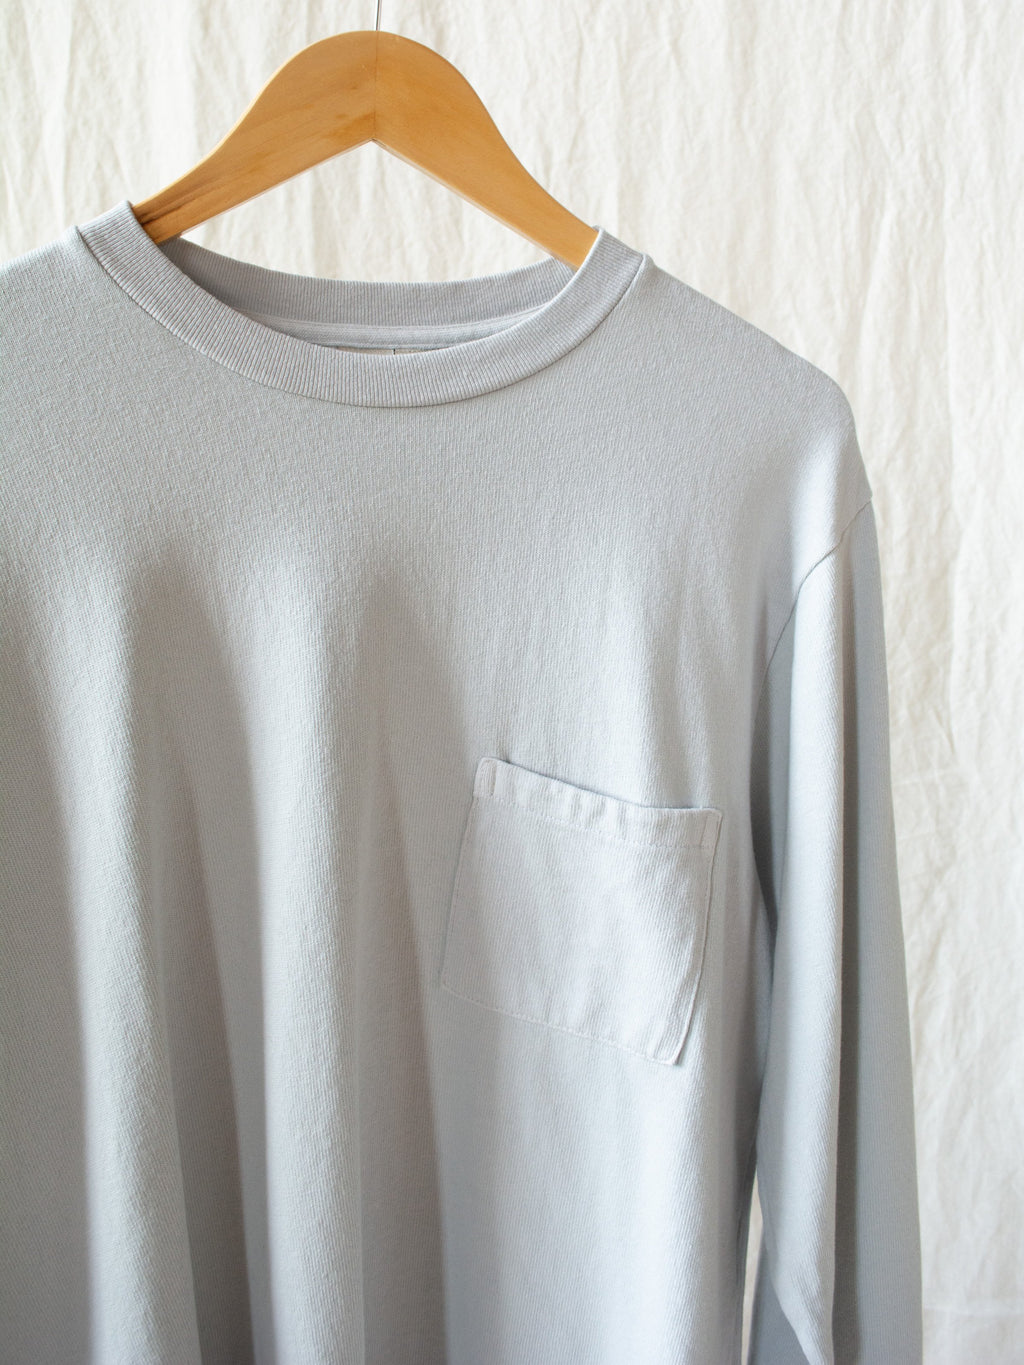 Namu Shop - paa LS Pocket Tee - Ice Gray